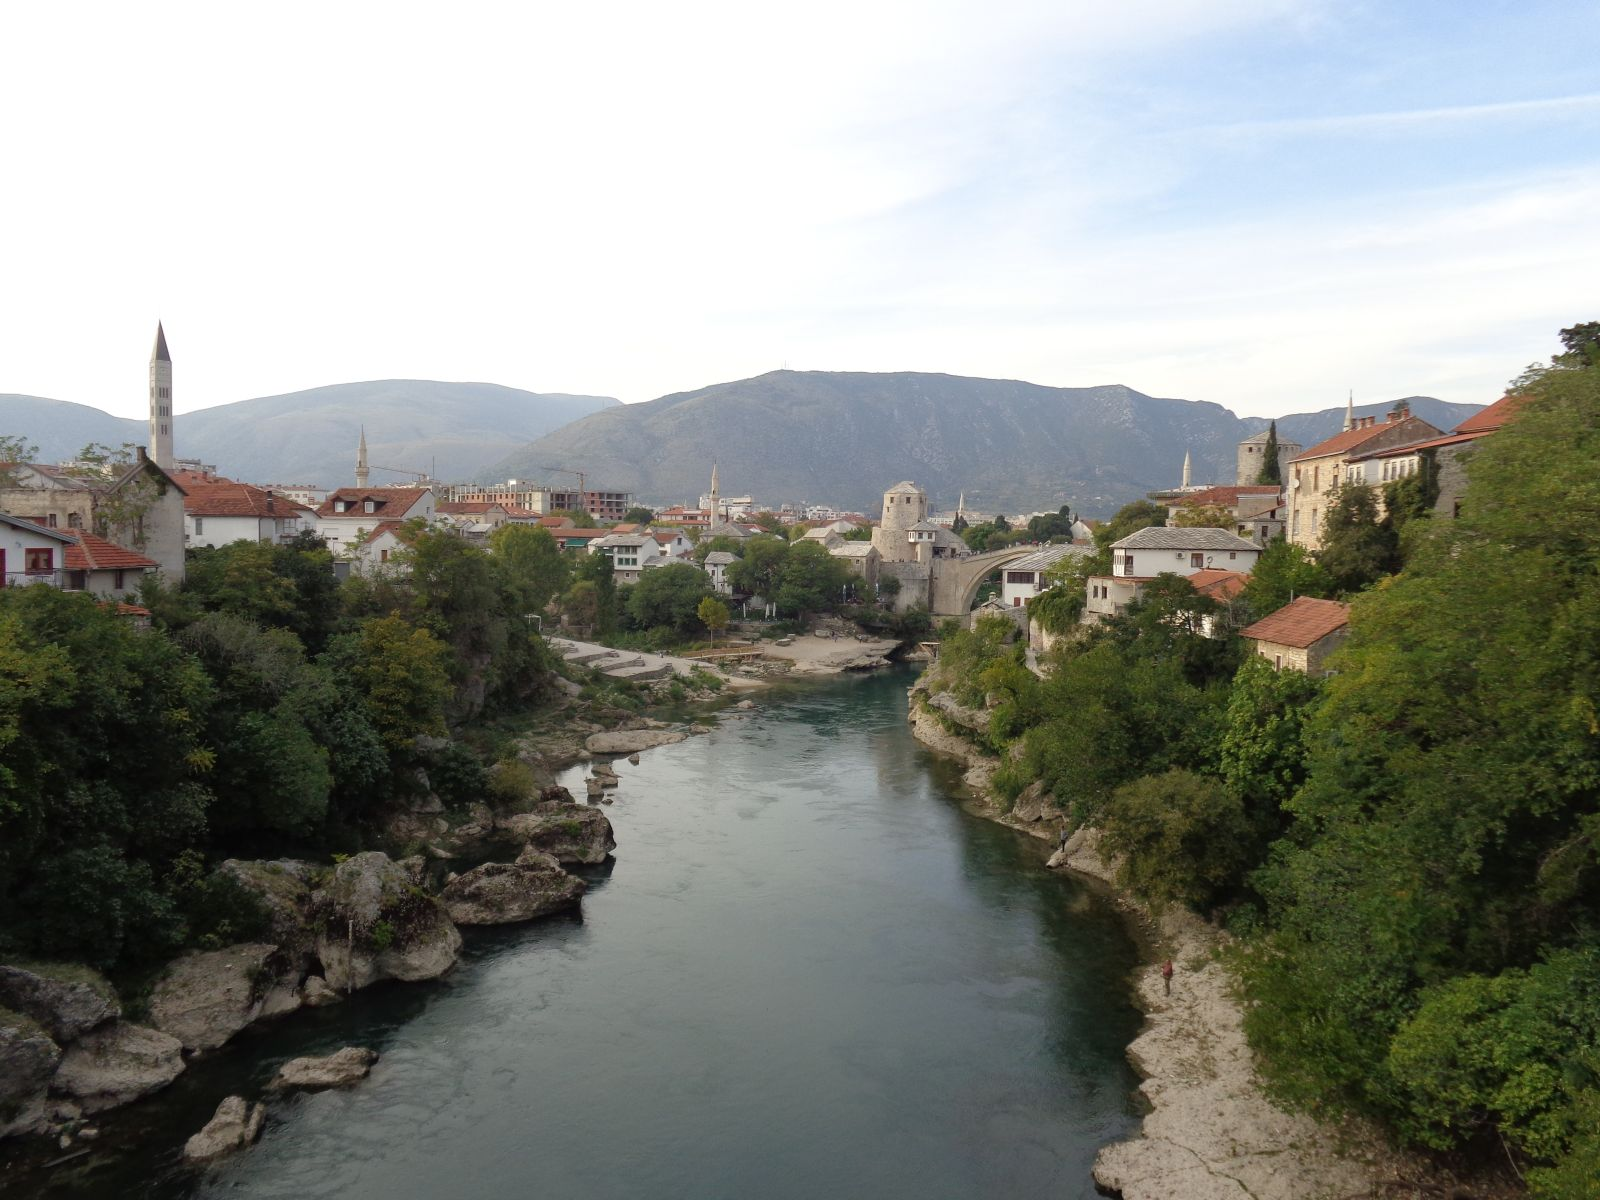 -images-excursions-mostar-private-tour-mostar-private-tour-008.jpg